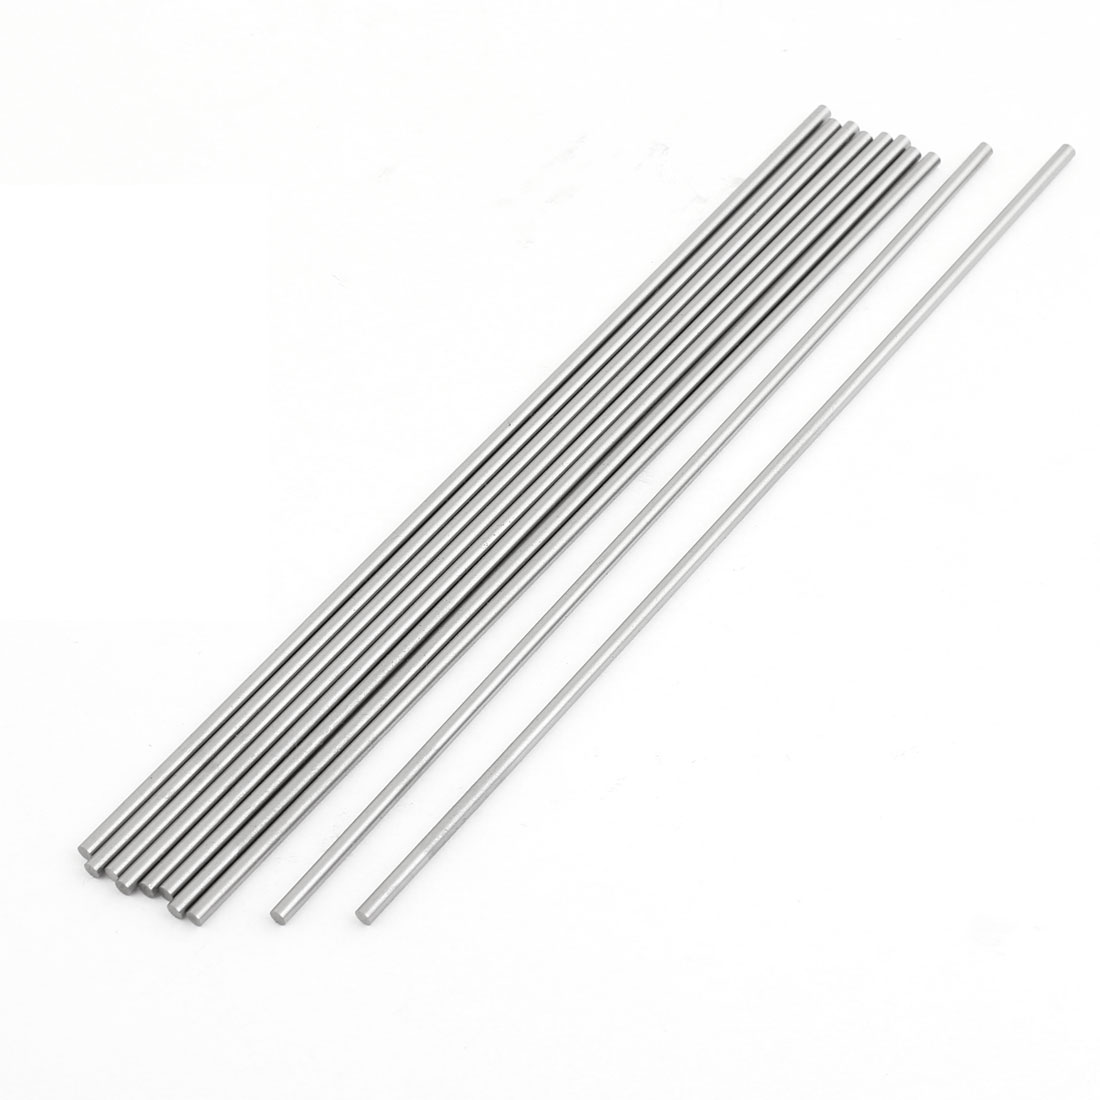 3mm x 200mm HSS Graving Tool Round Turning Lathe Carbide Bars Stick 10PCS by